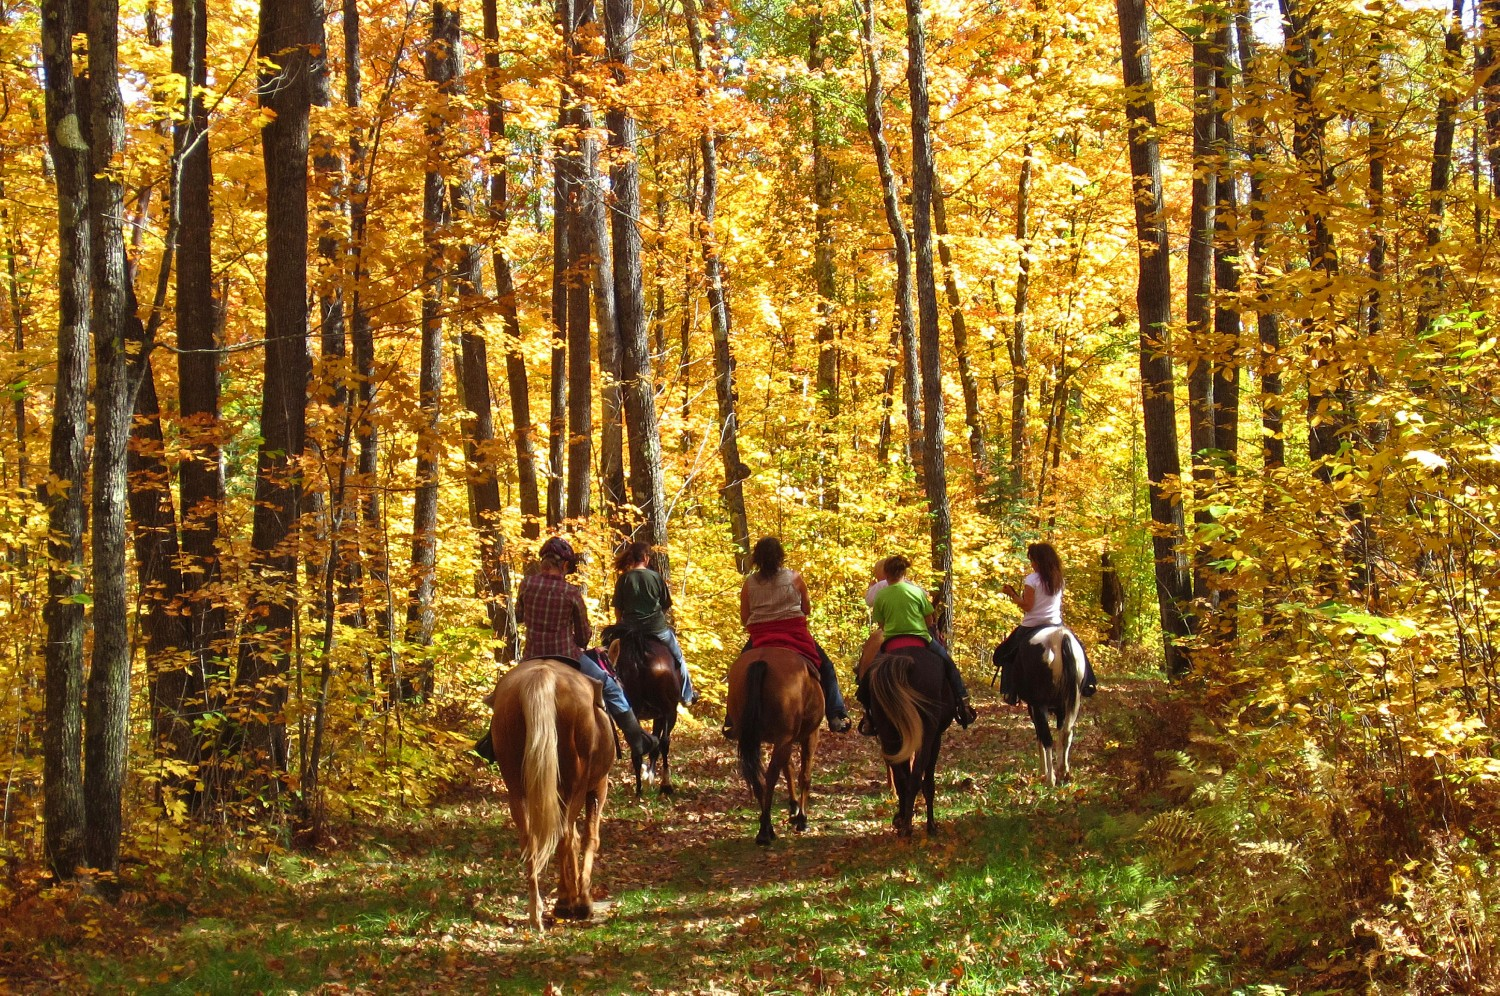 a fall horse back ride author pluskwik paul